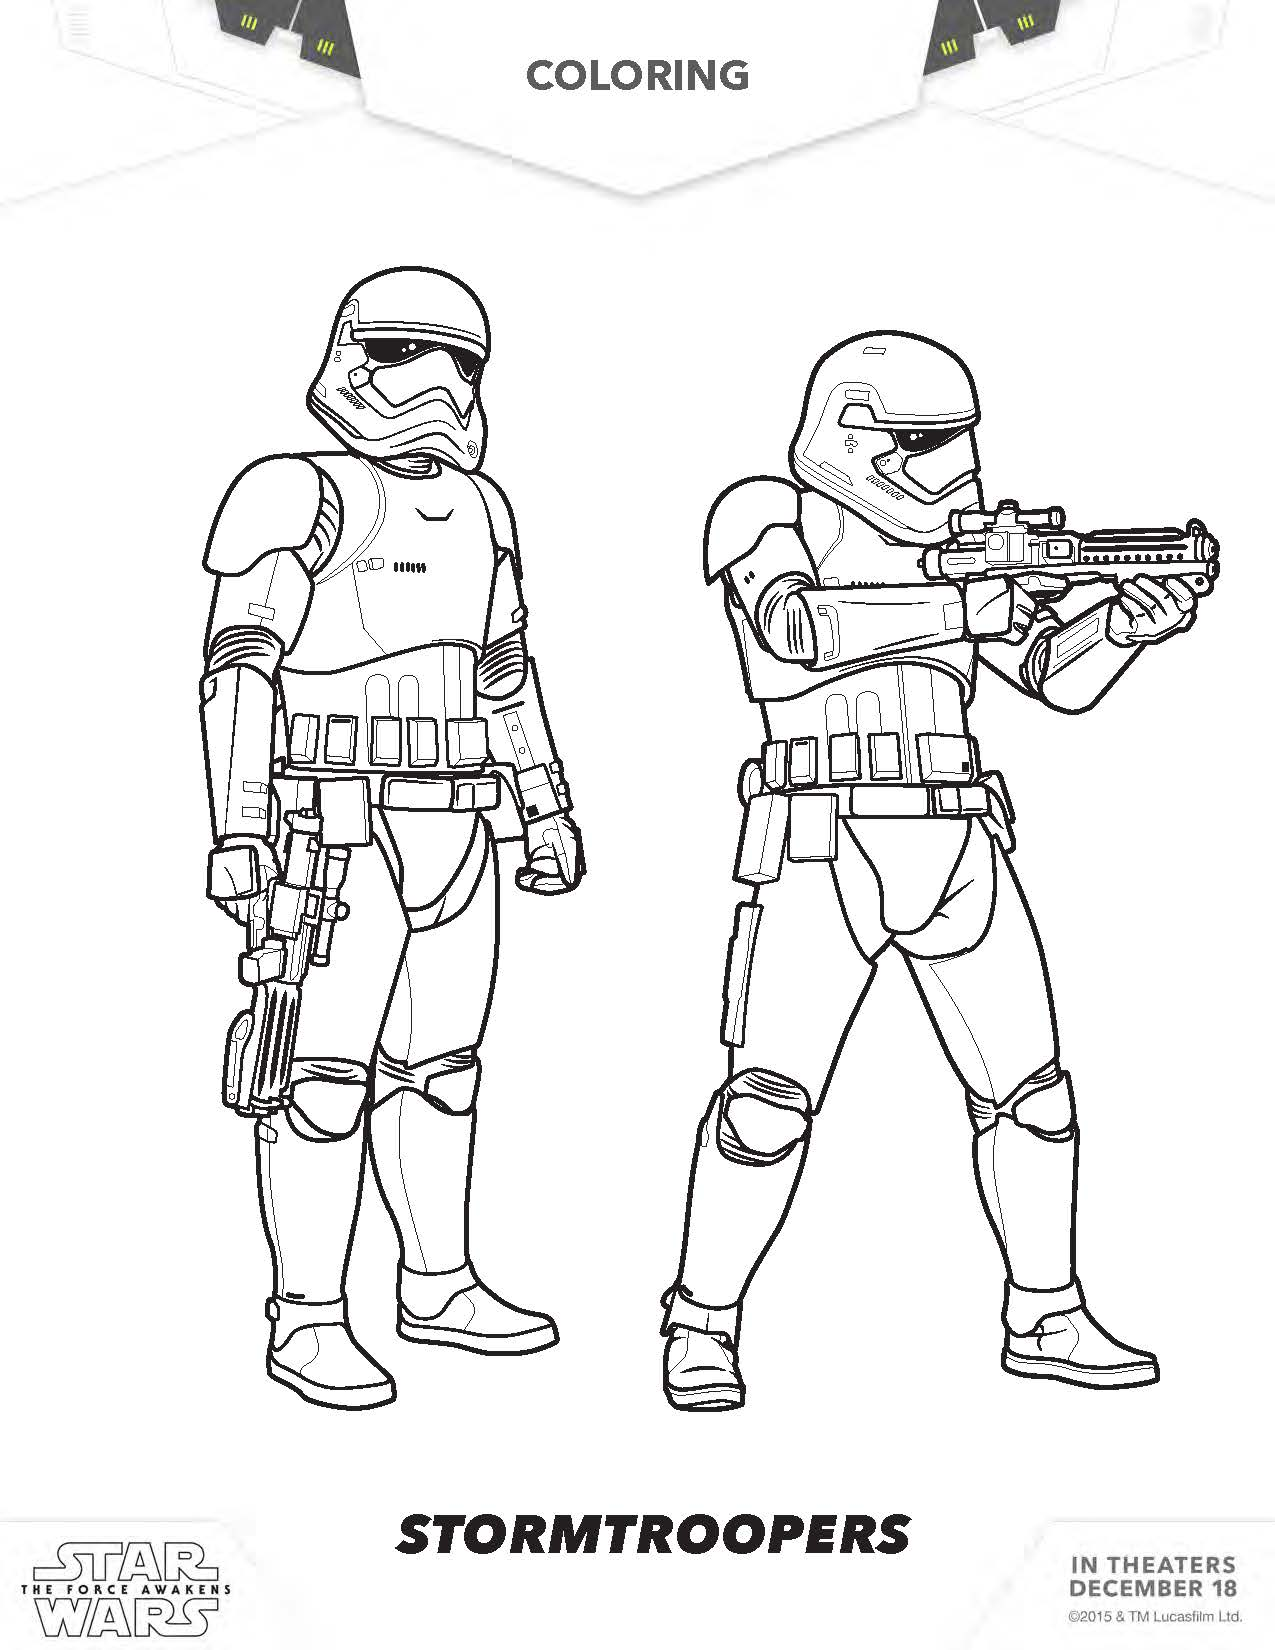 Coloring pages star wars bb8 - Star Wars Rey Coloring Pages Star Wars Poe Coloring Pages The Force Awakens Stormtroopers Coloring Pages